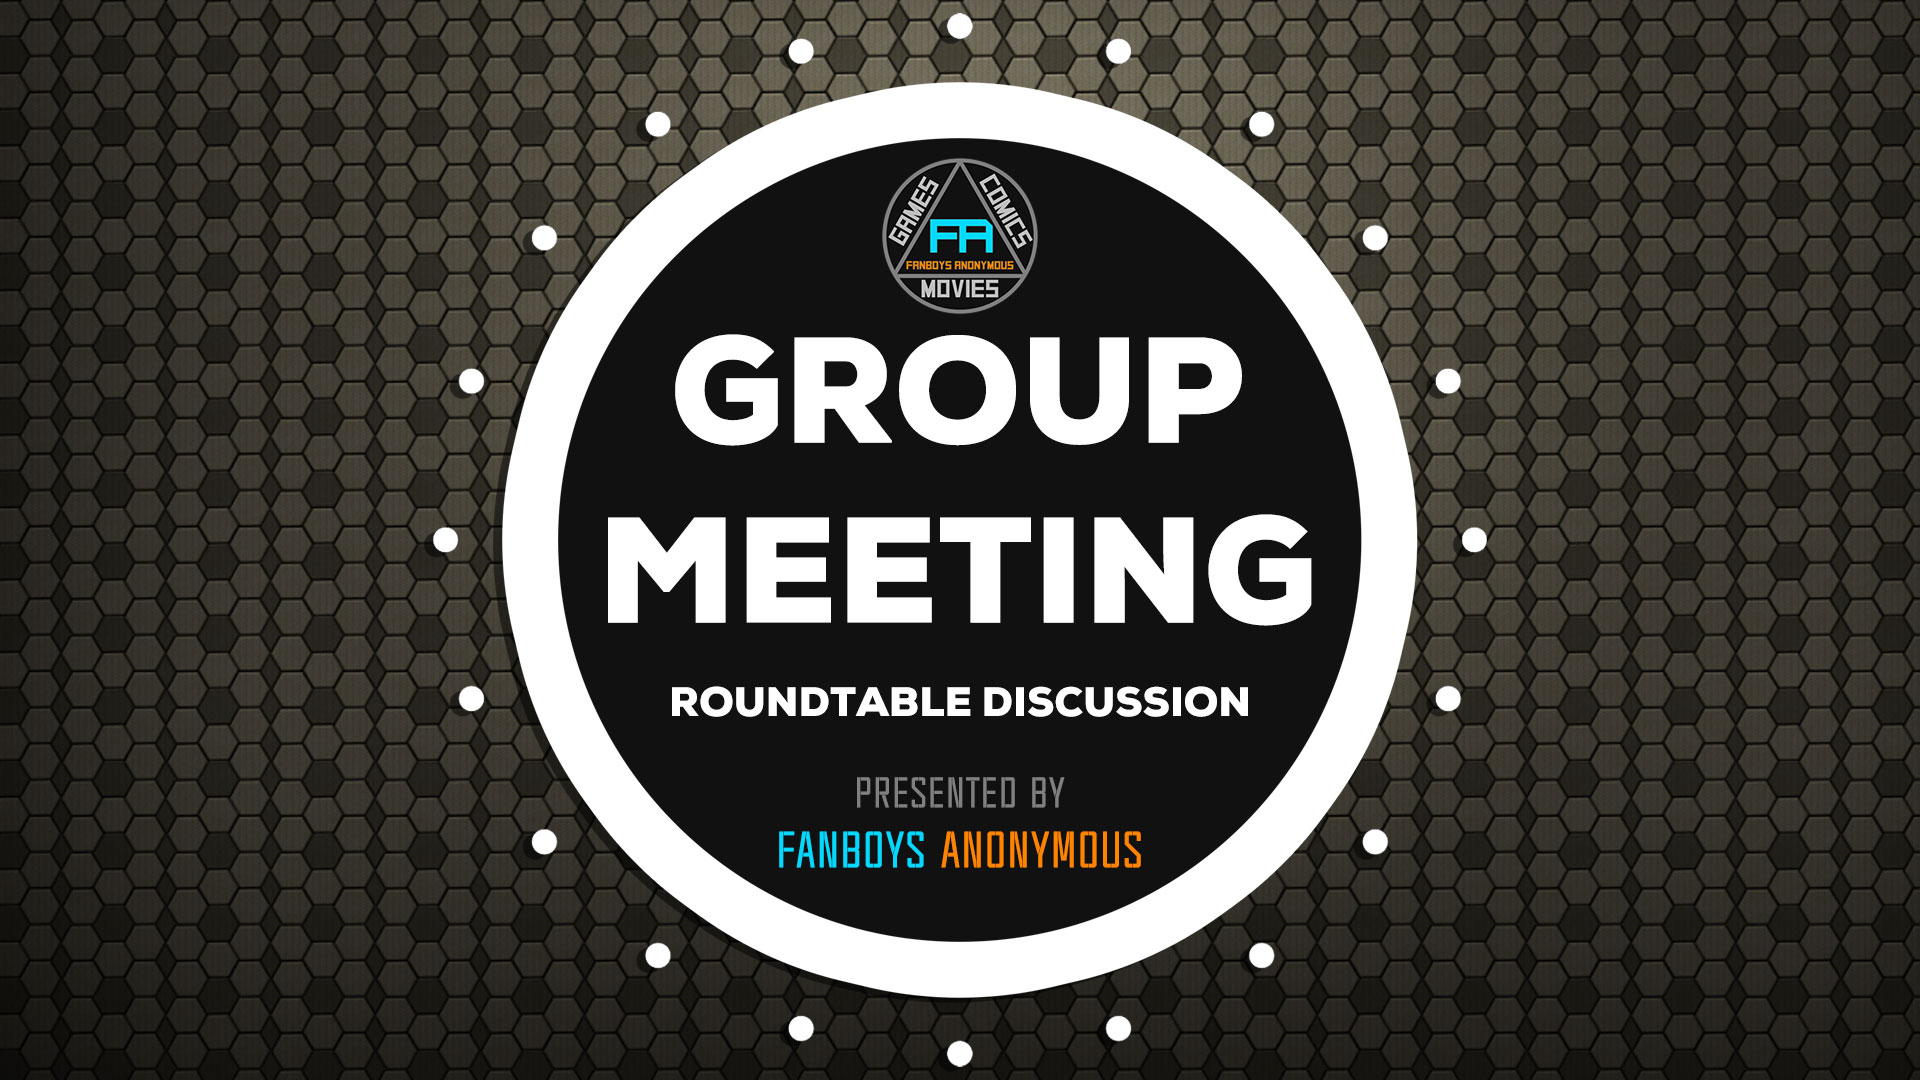 Fanboys Anonymous roundtable discussion show